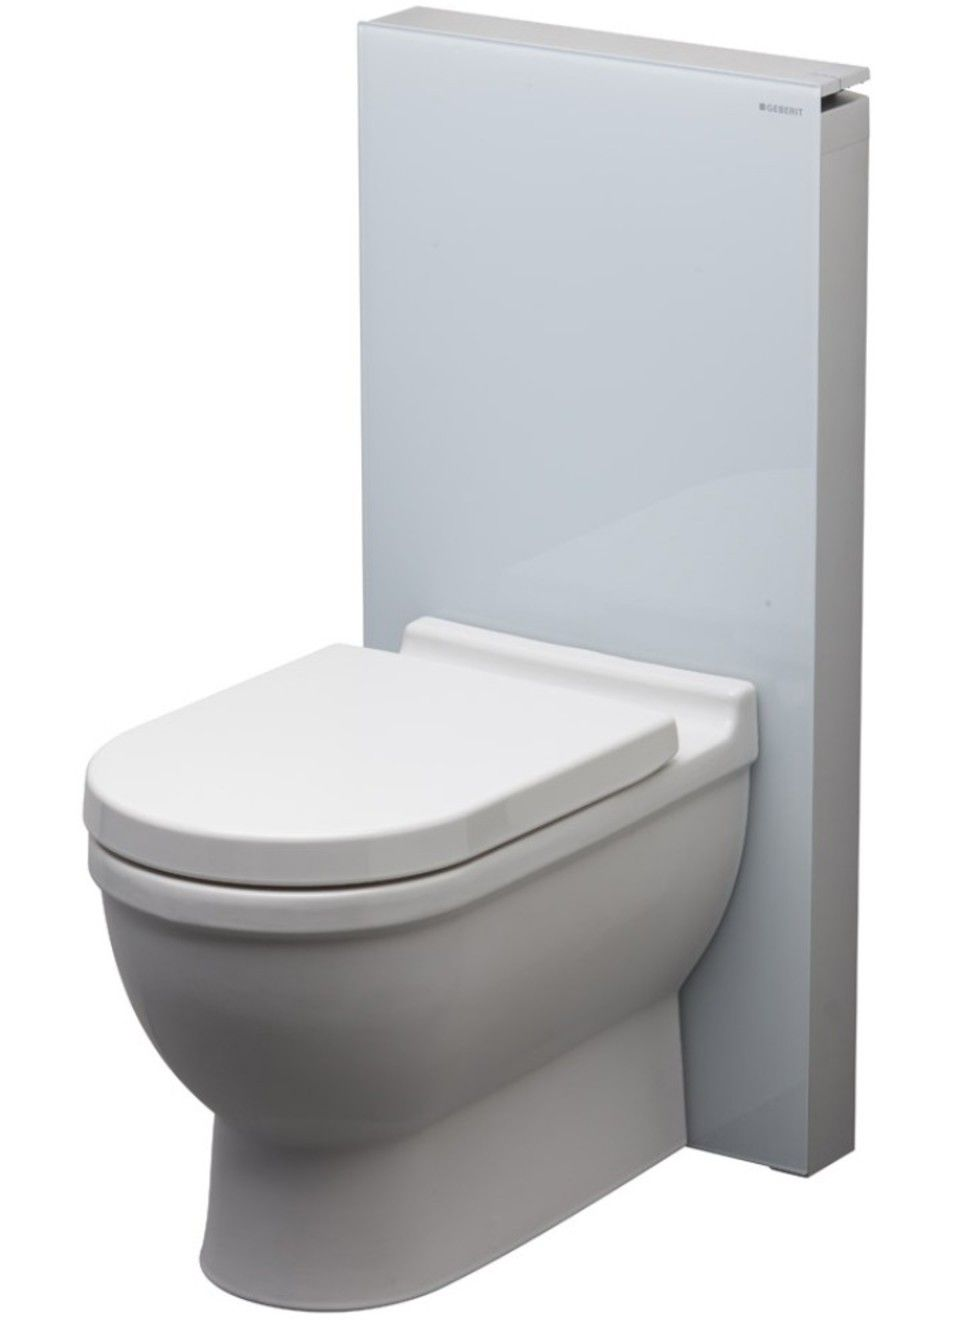 Geberit Monolith For Floor Mount Toilet In White Glass In 2020 Toilet Flooring Monolith